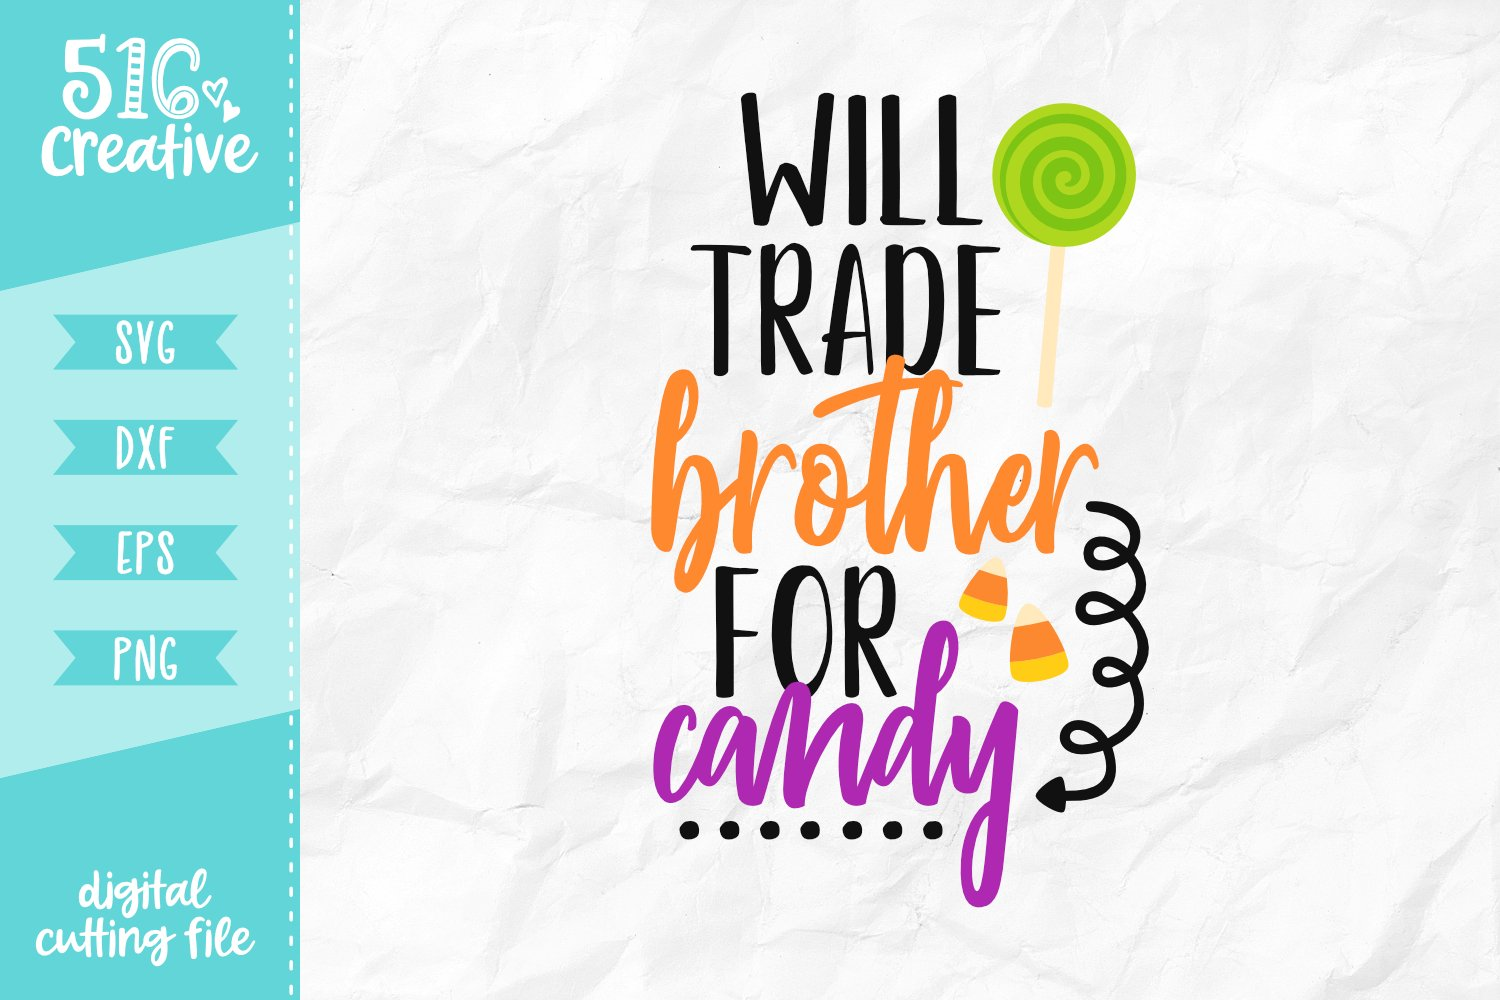 Will Trade Brother For Candy Svg Dxf Eps Png 137262 Svgs Design Bundles